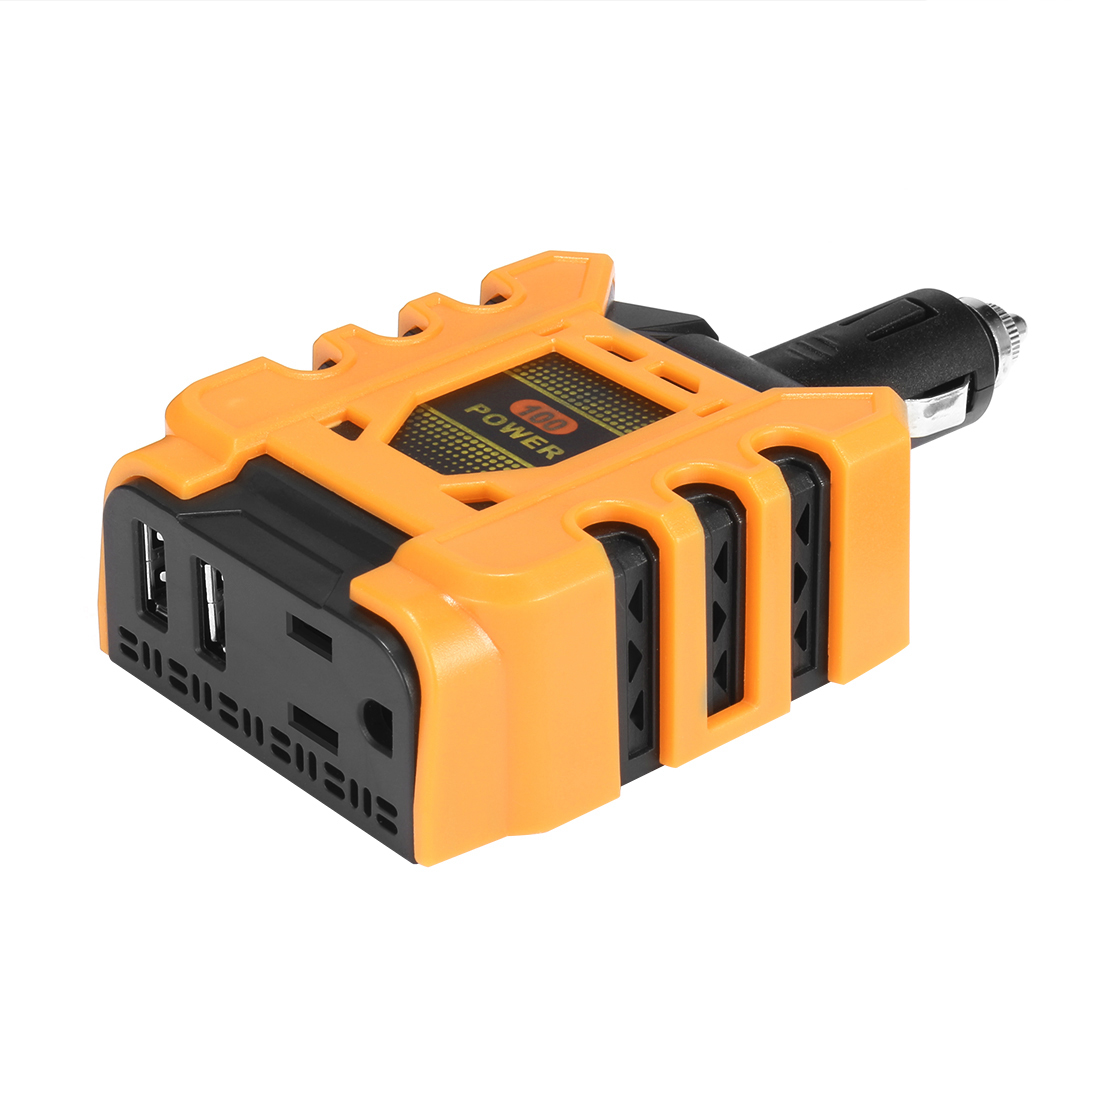 100W Power DC 12V to 110V AC Car Inverter w 2.4A Dual USB Car Adapter Yellow